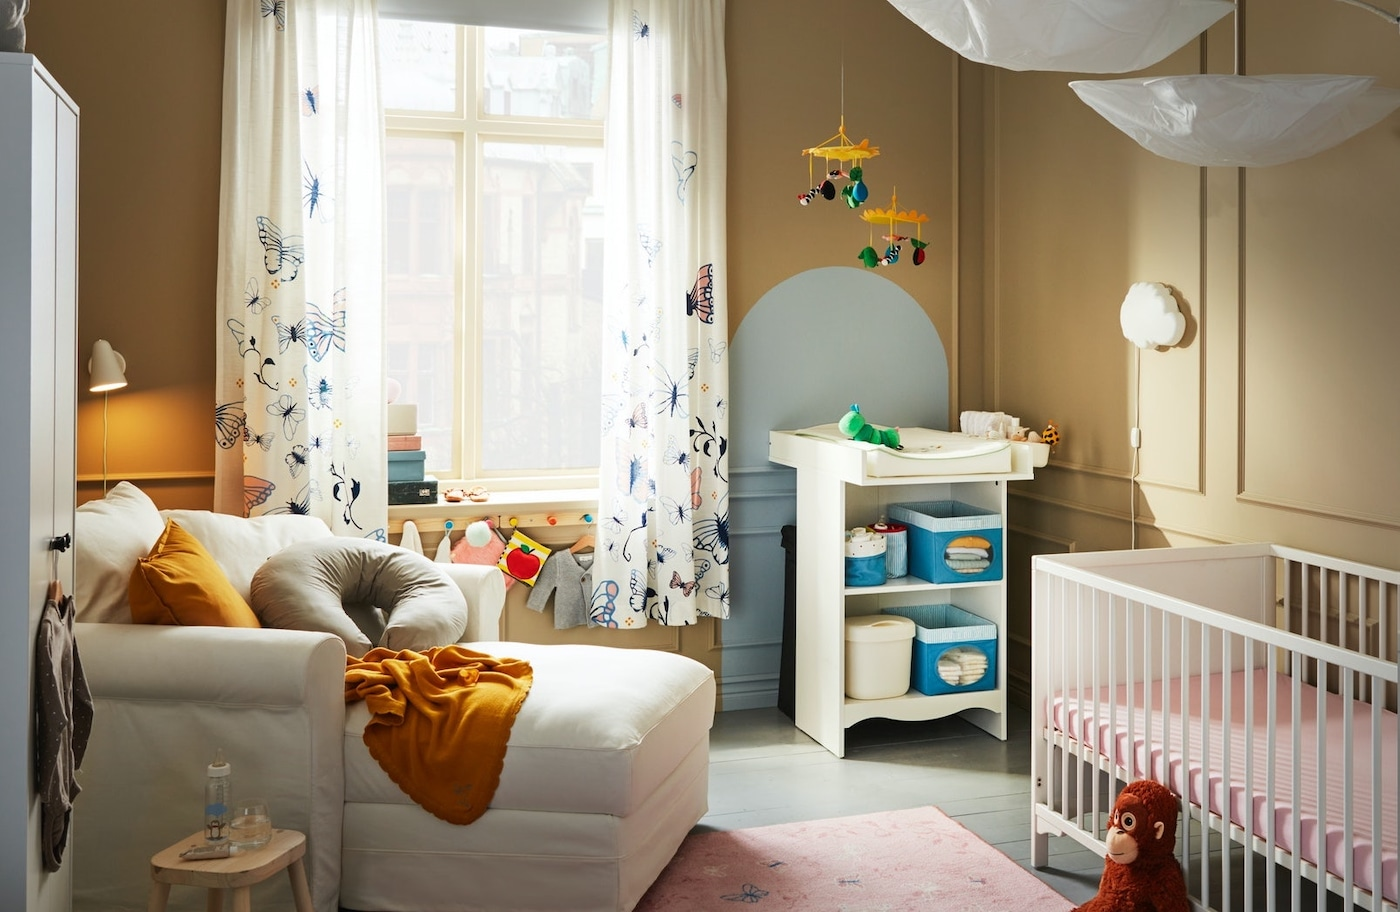 Decor ideas for a baby's bedroom